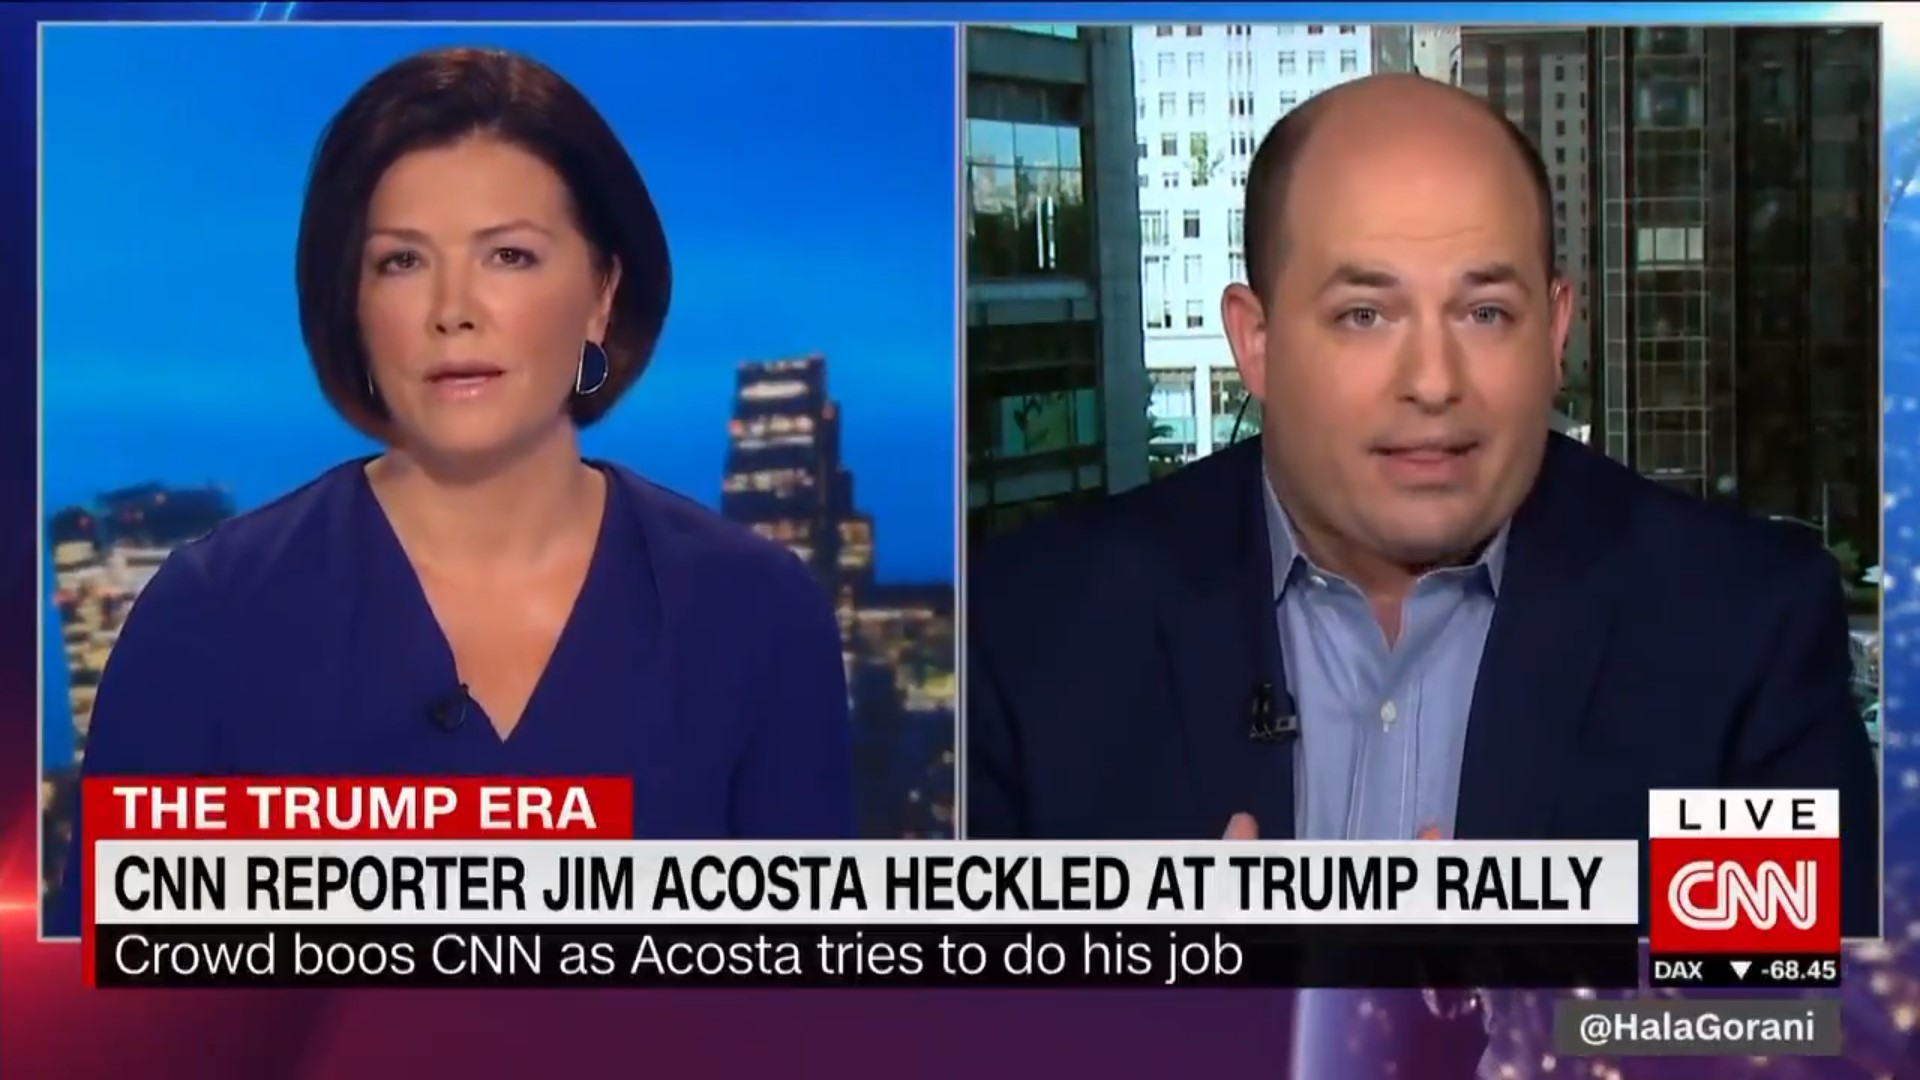 CNN's Brian Stelter: Trump And His Allies Are Promoting A 'Hate Movement' Against The Media